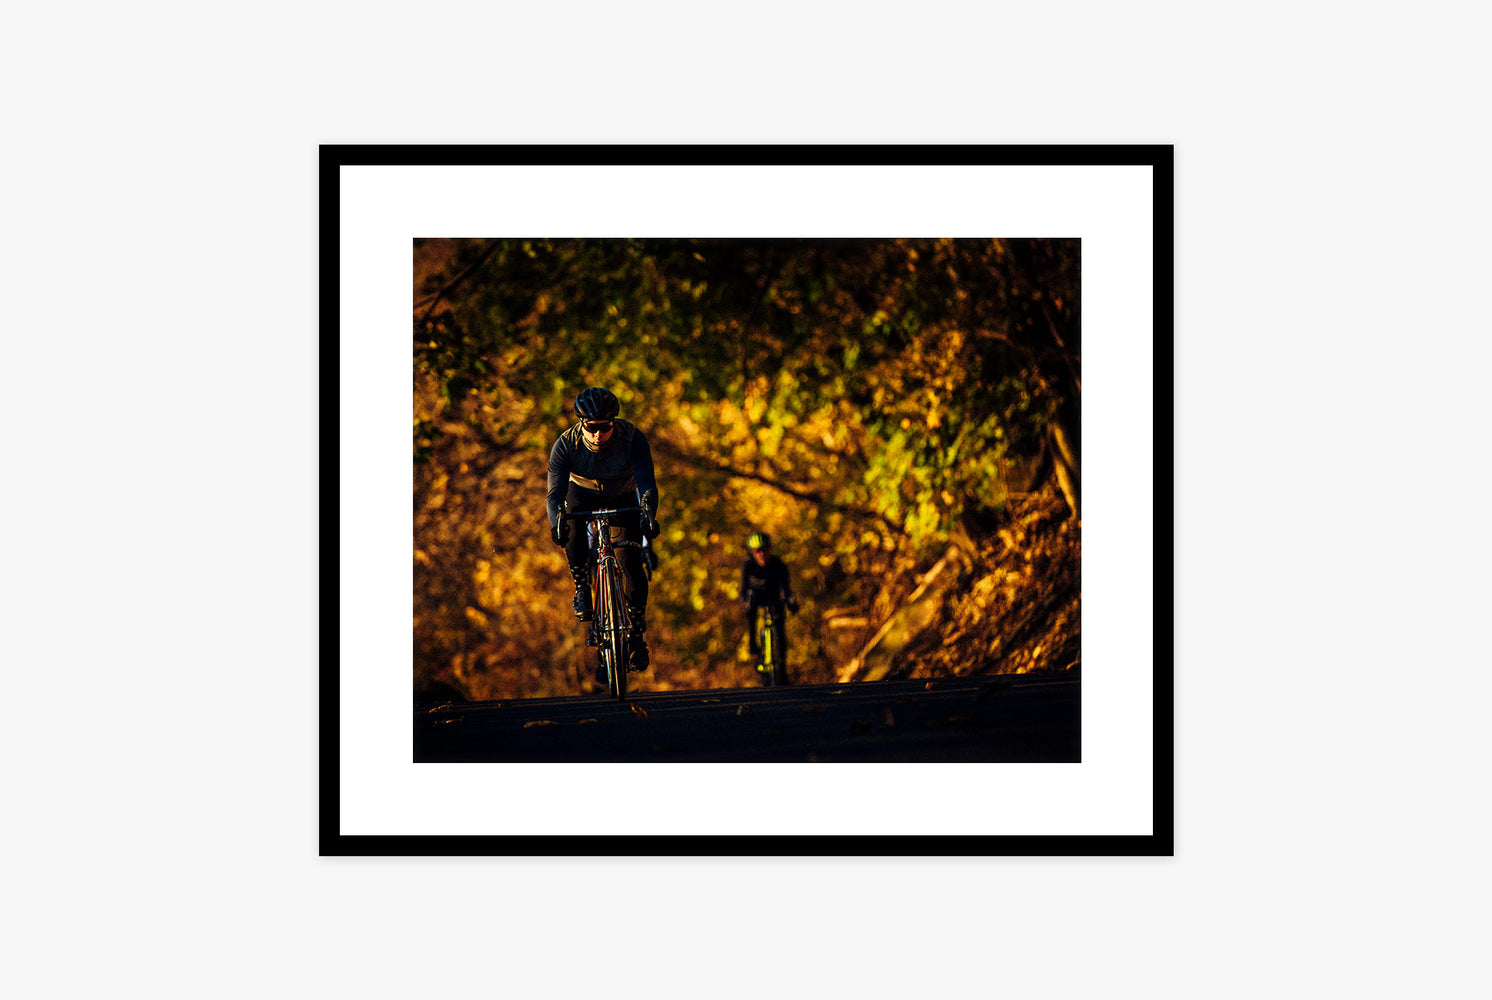 Framed photo of two bicyclists riding at night